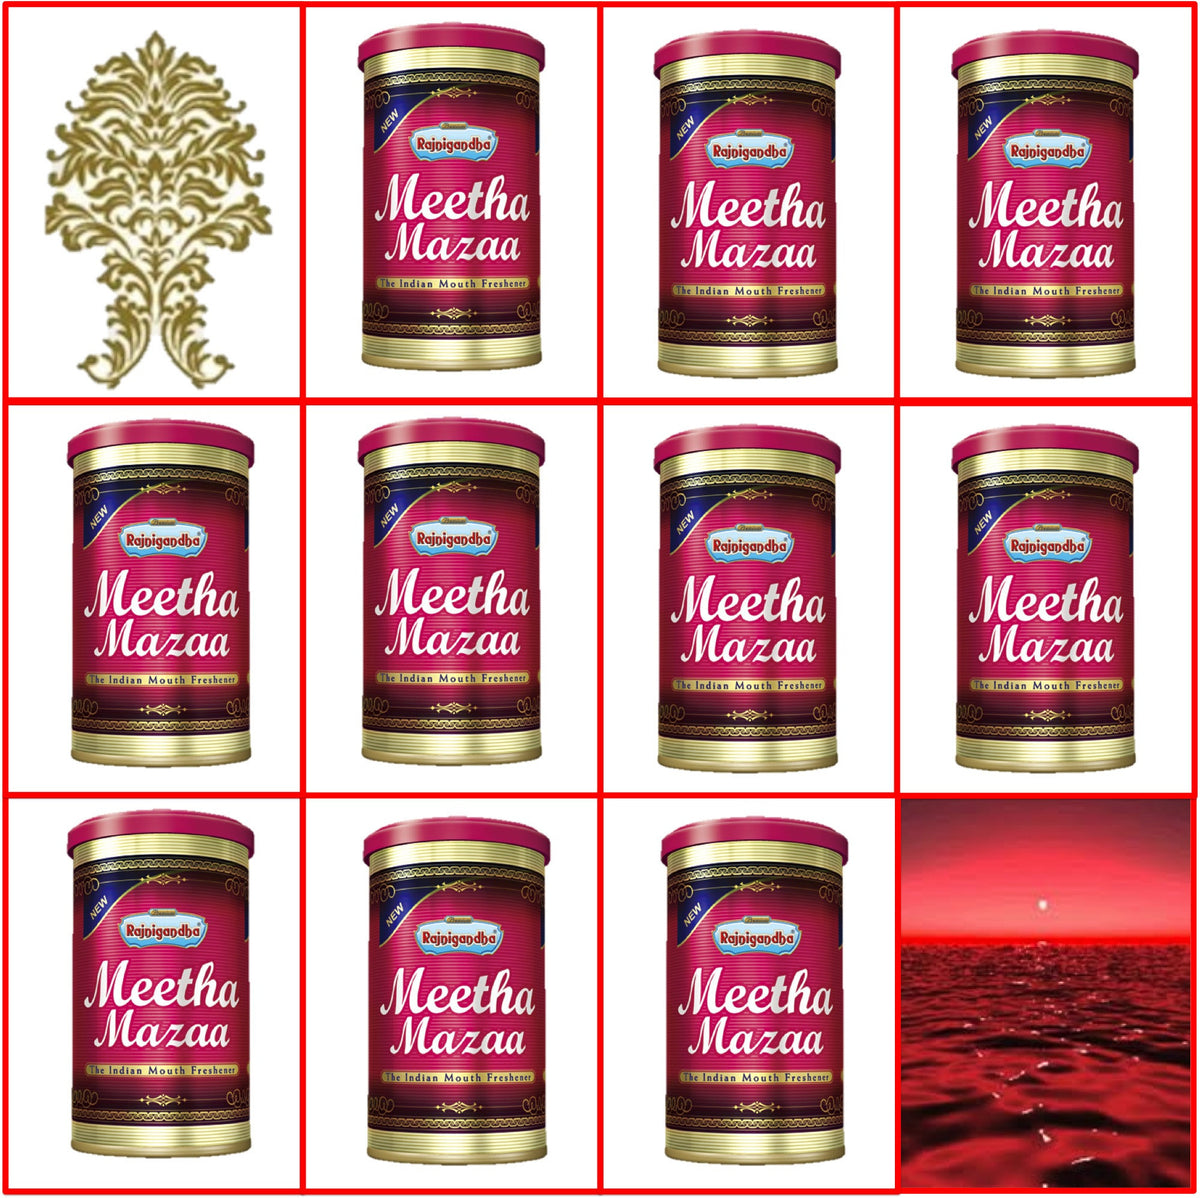 Ten (10) Cans 50g Rajnigandha Meetha Mazaa Export Quality July 2017